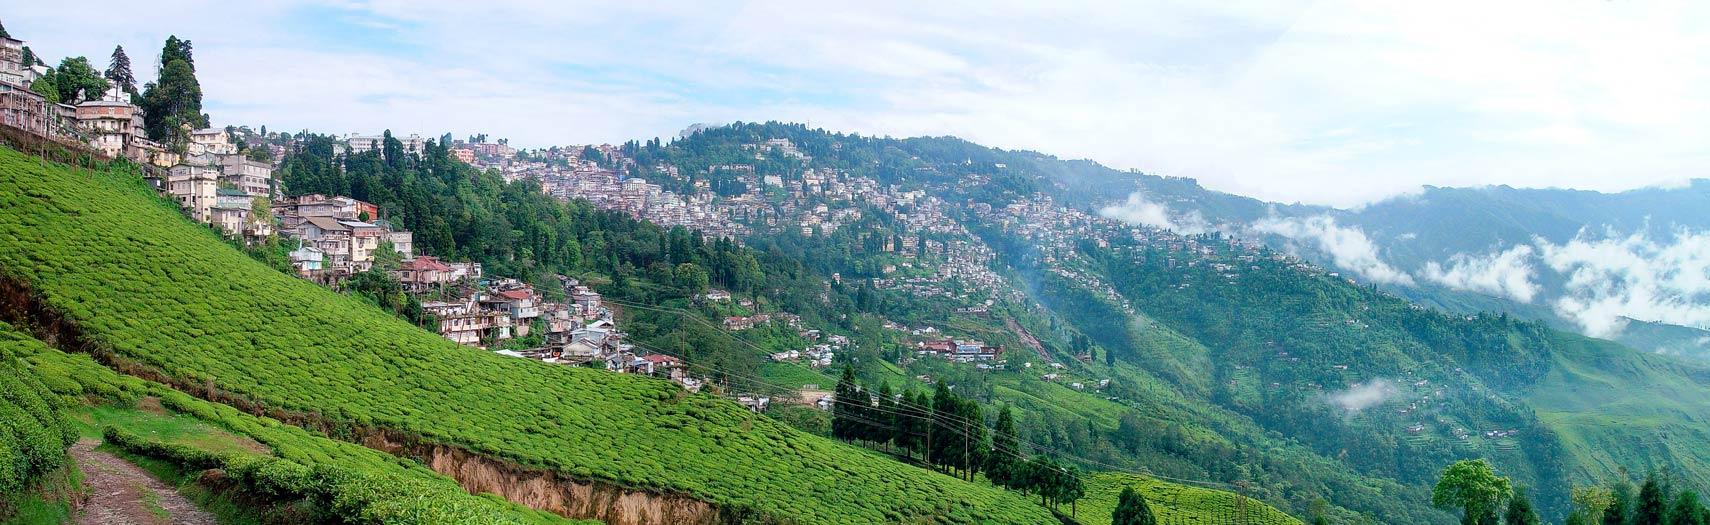 Happy Valley Tea Estate,  Darjeeling, West Bengal, India